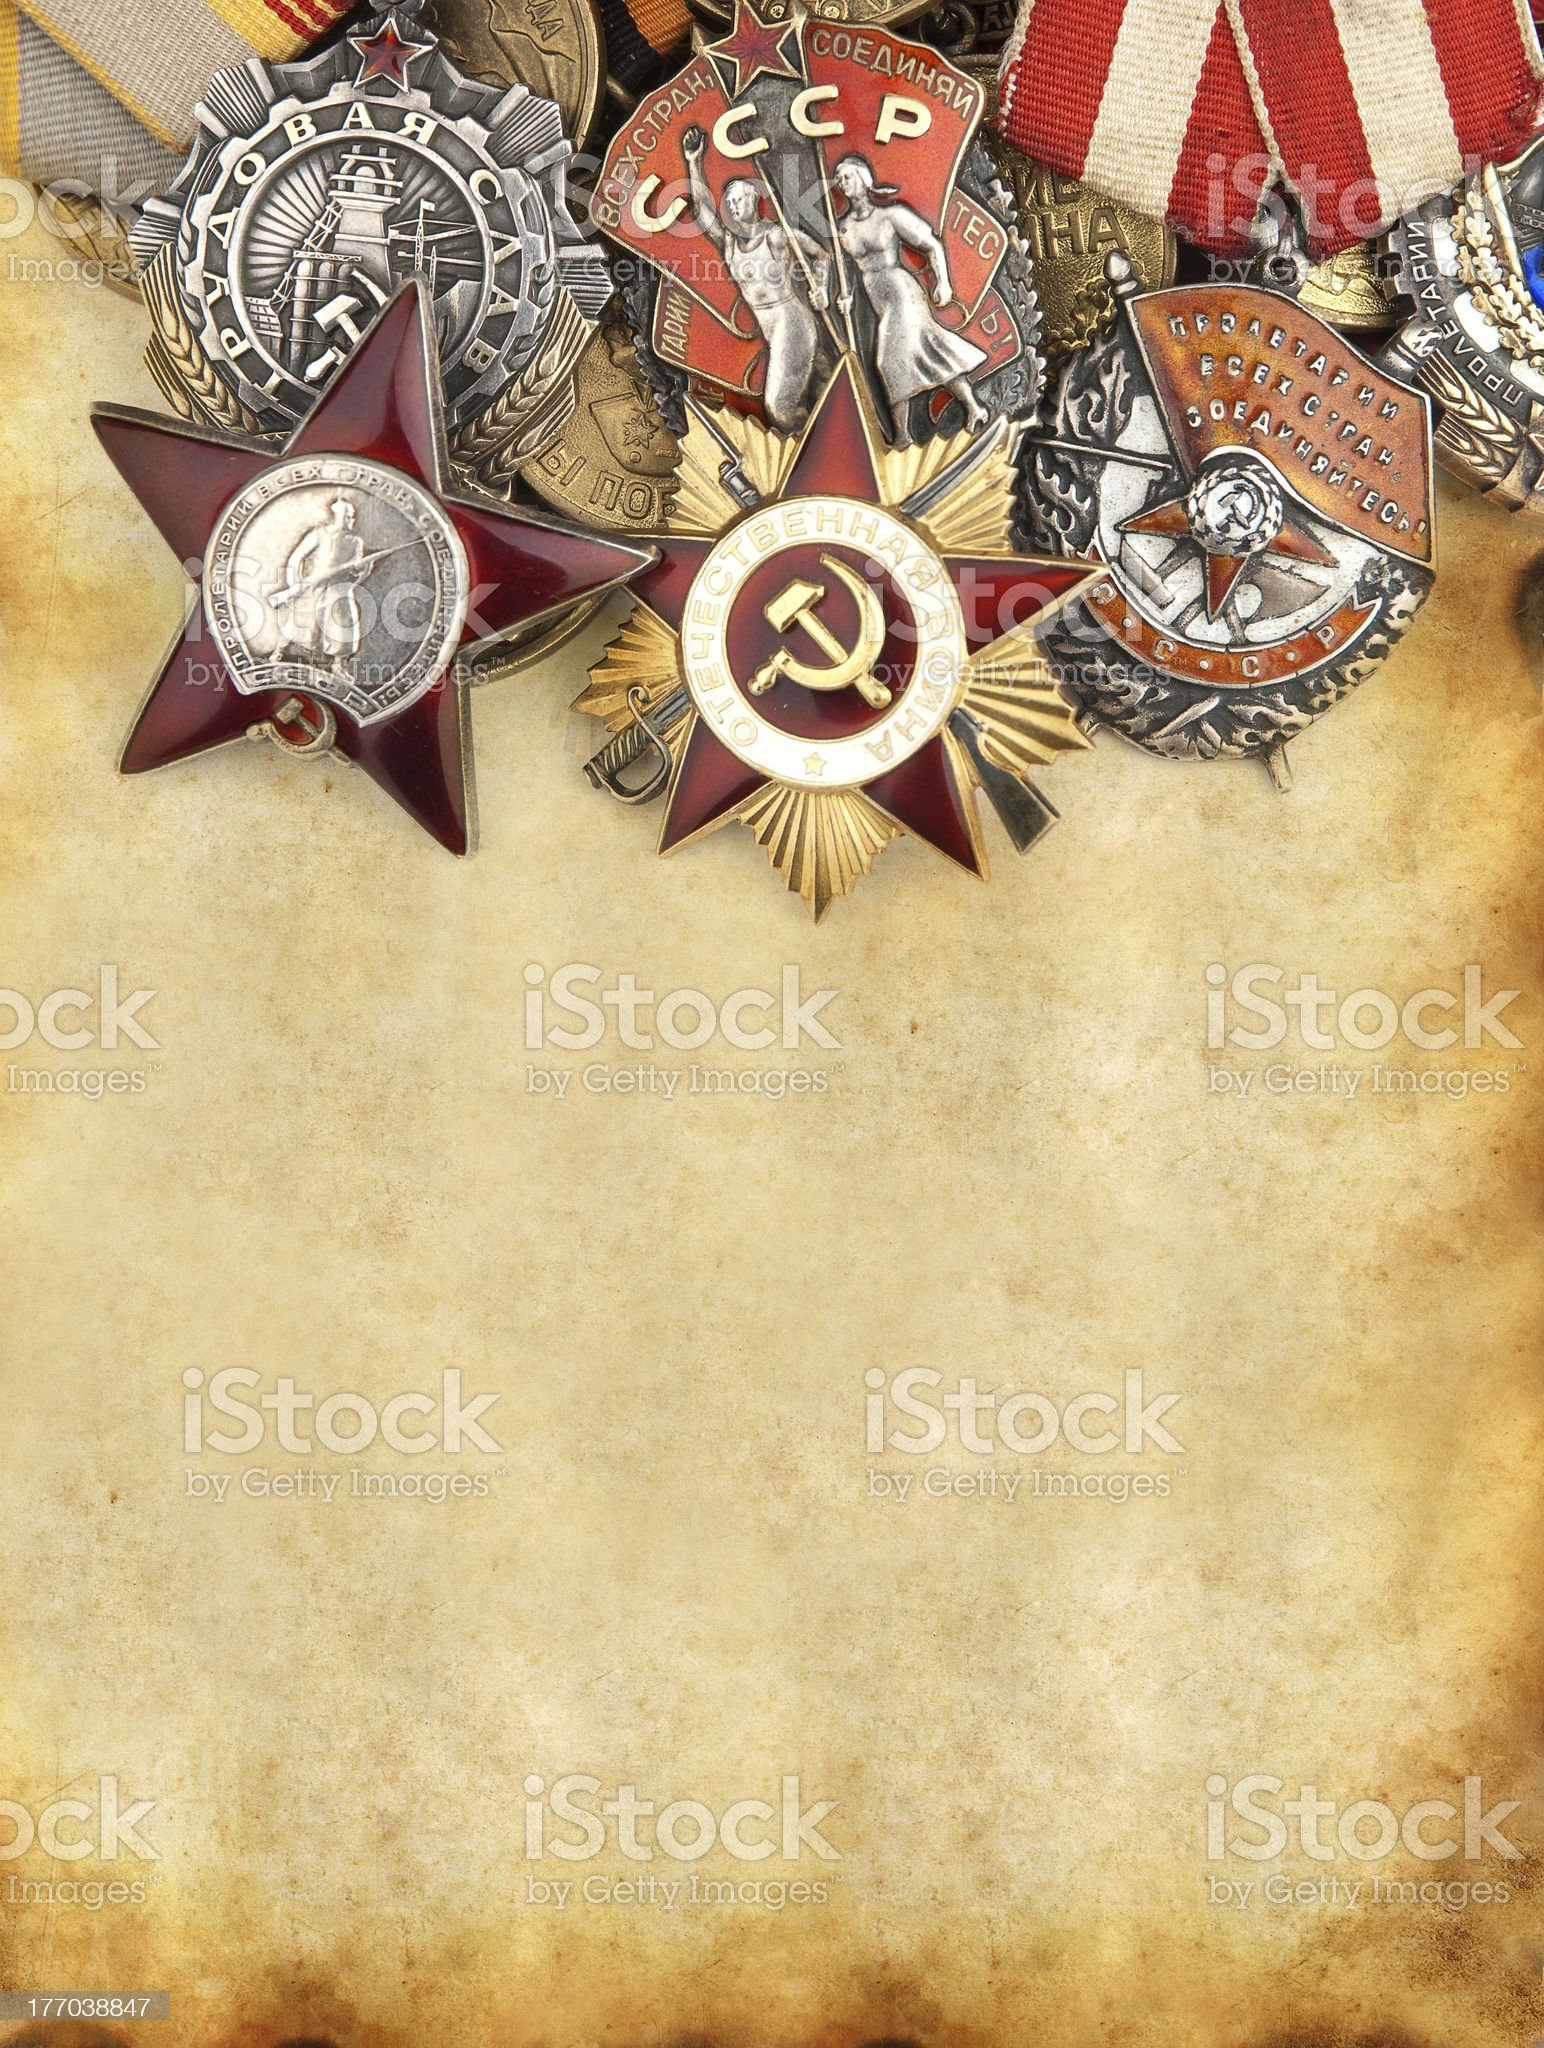 World War II Russian military medals royalty-free stock photo